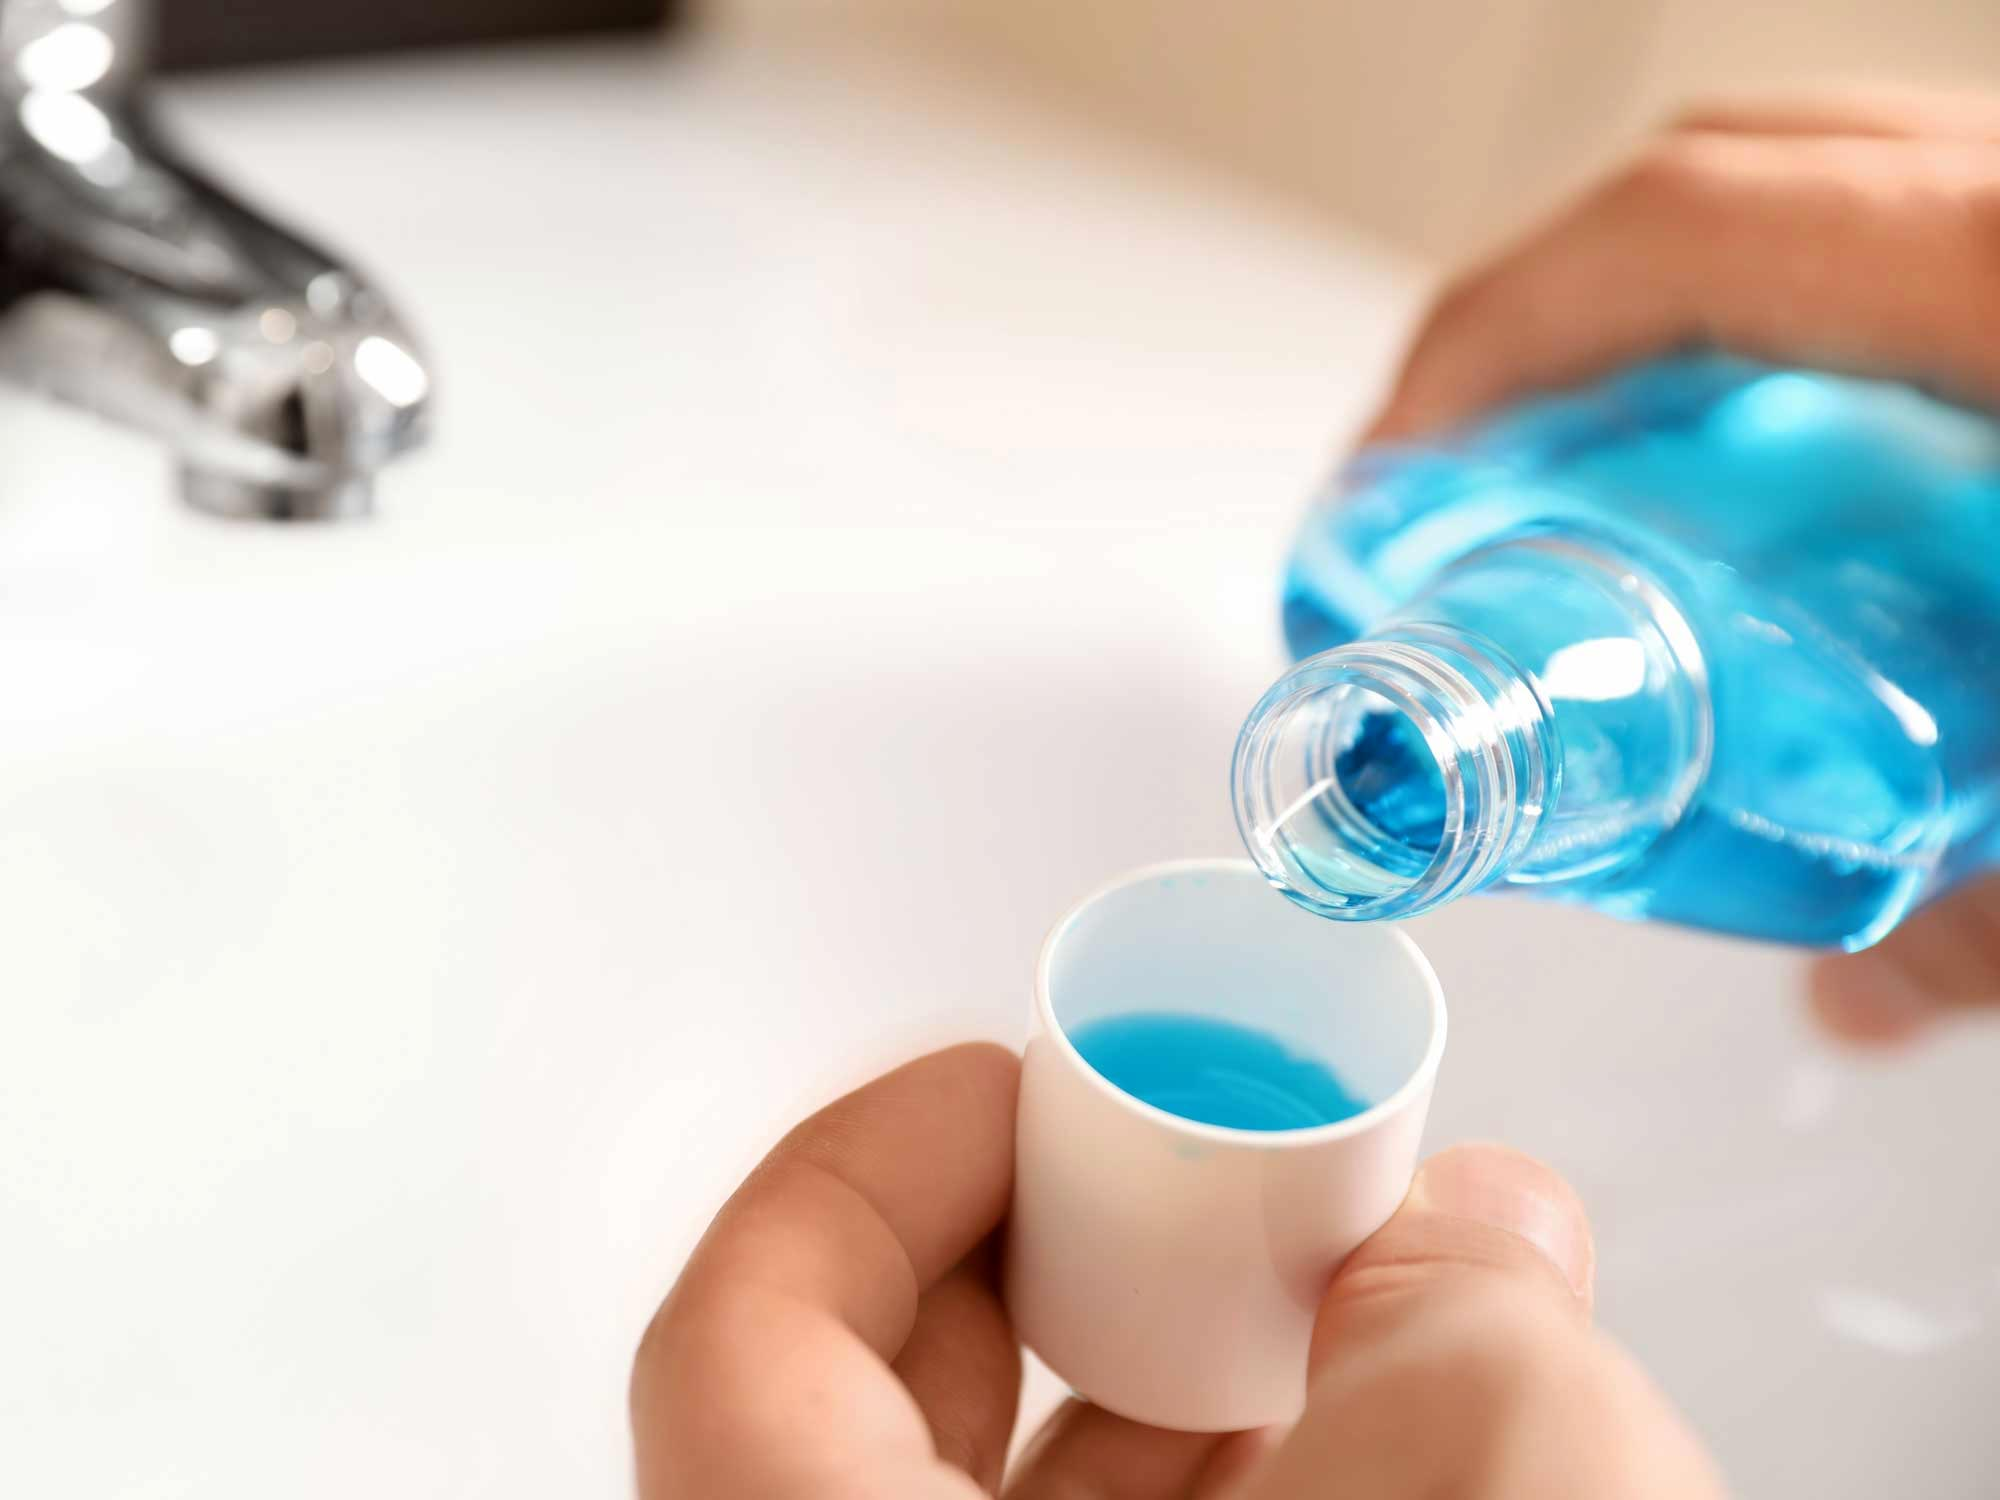 Mouthwash May Inactivate Human Coronaviruses, Help Reduce Spread of COVID-19